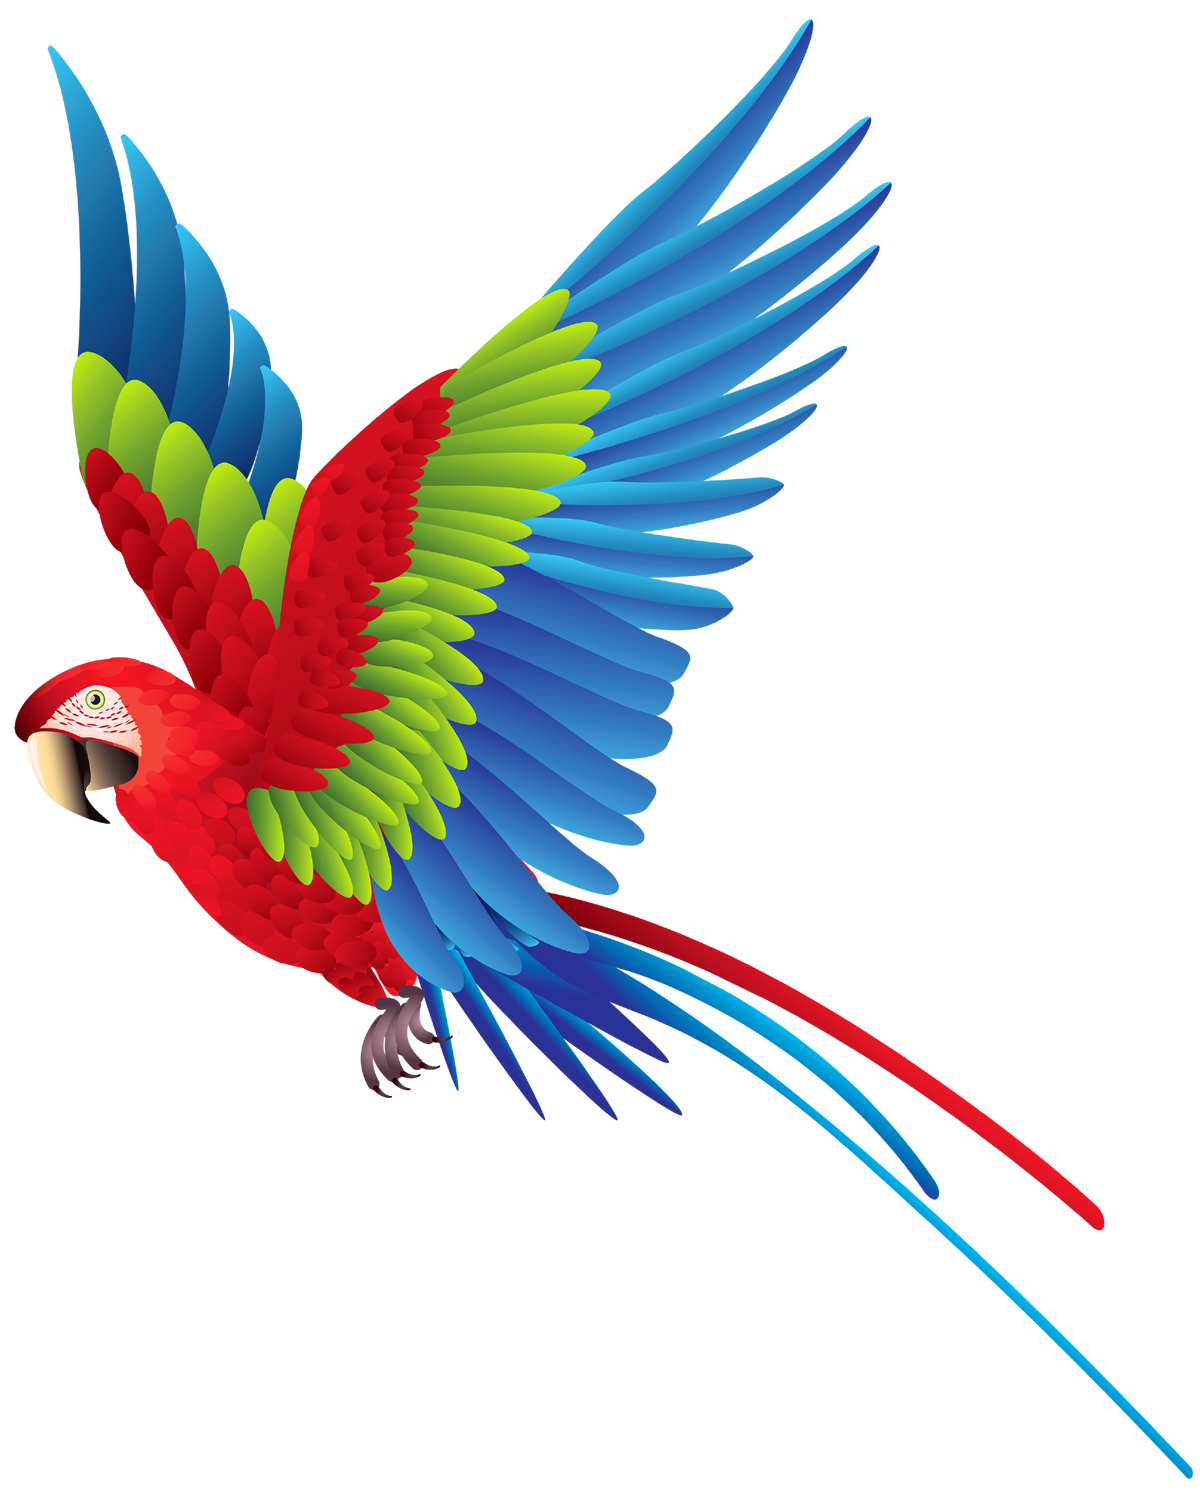 Hd quality flying png. Parrot clipart bird fly